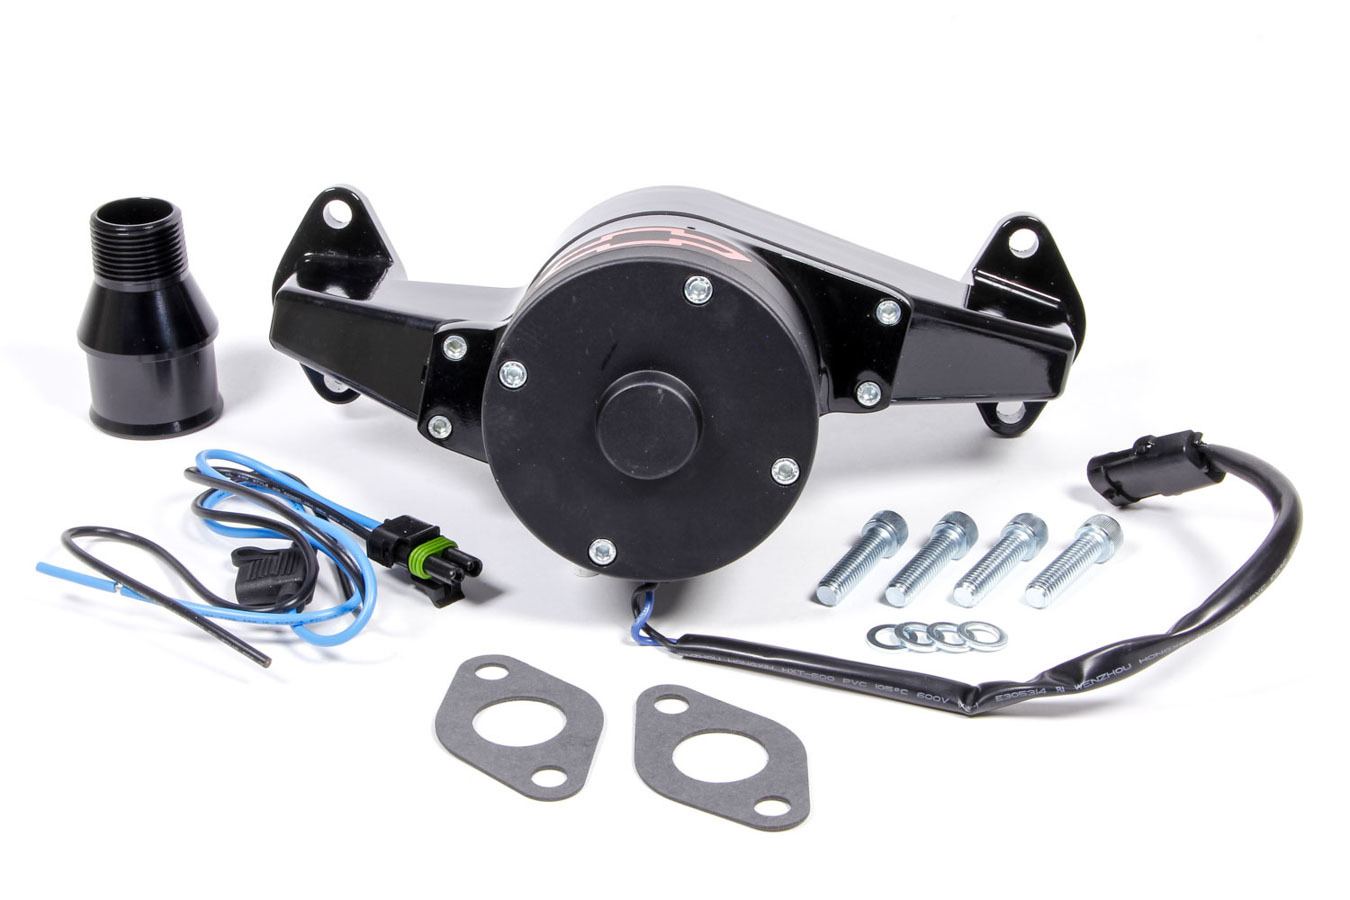 Proform 141-674 Water Pump, Electric, 1 in NPT Female Inlet, Adapter / Gaskets / Hardware, Bowtie Logo, Billet Aluminum, Black Powder Coat, Big Block Chevy, Kit